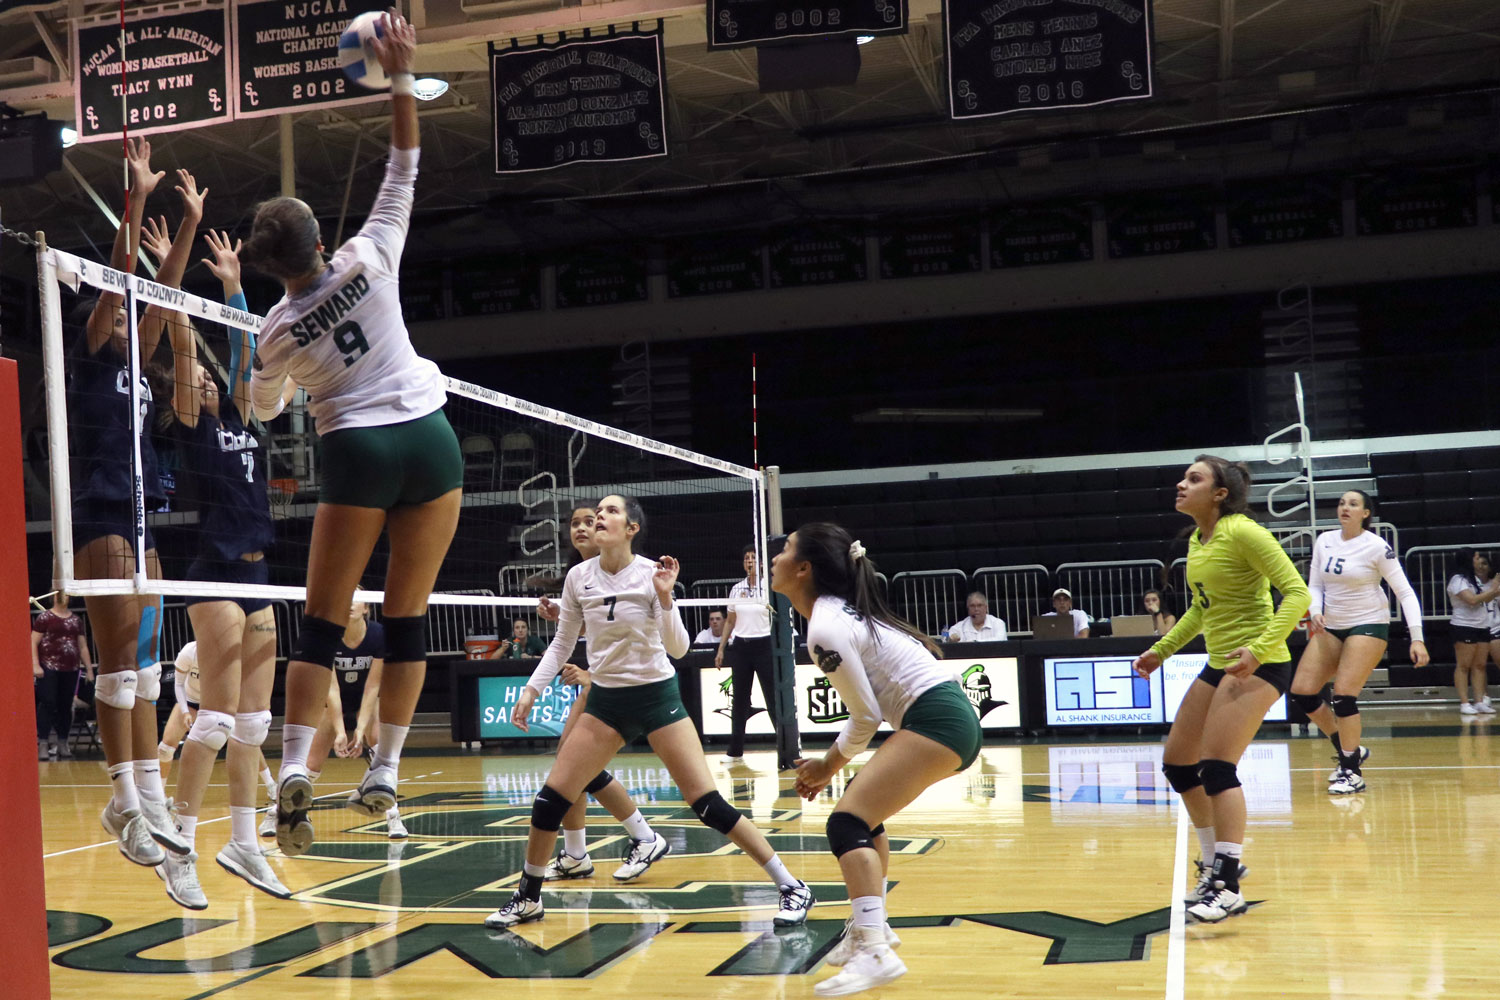 The Lady Saints defeated Colby Community College in three sets on Monday, Sept. 24. SCCC has now won their 16 straight game in a row.